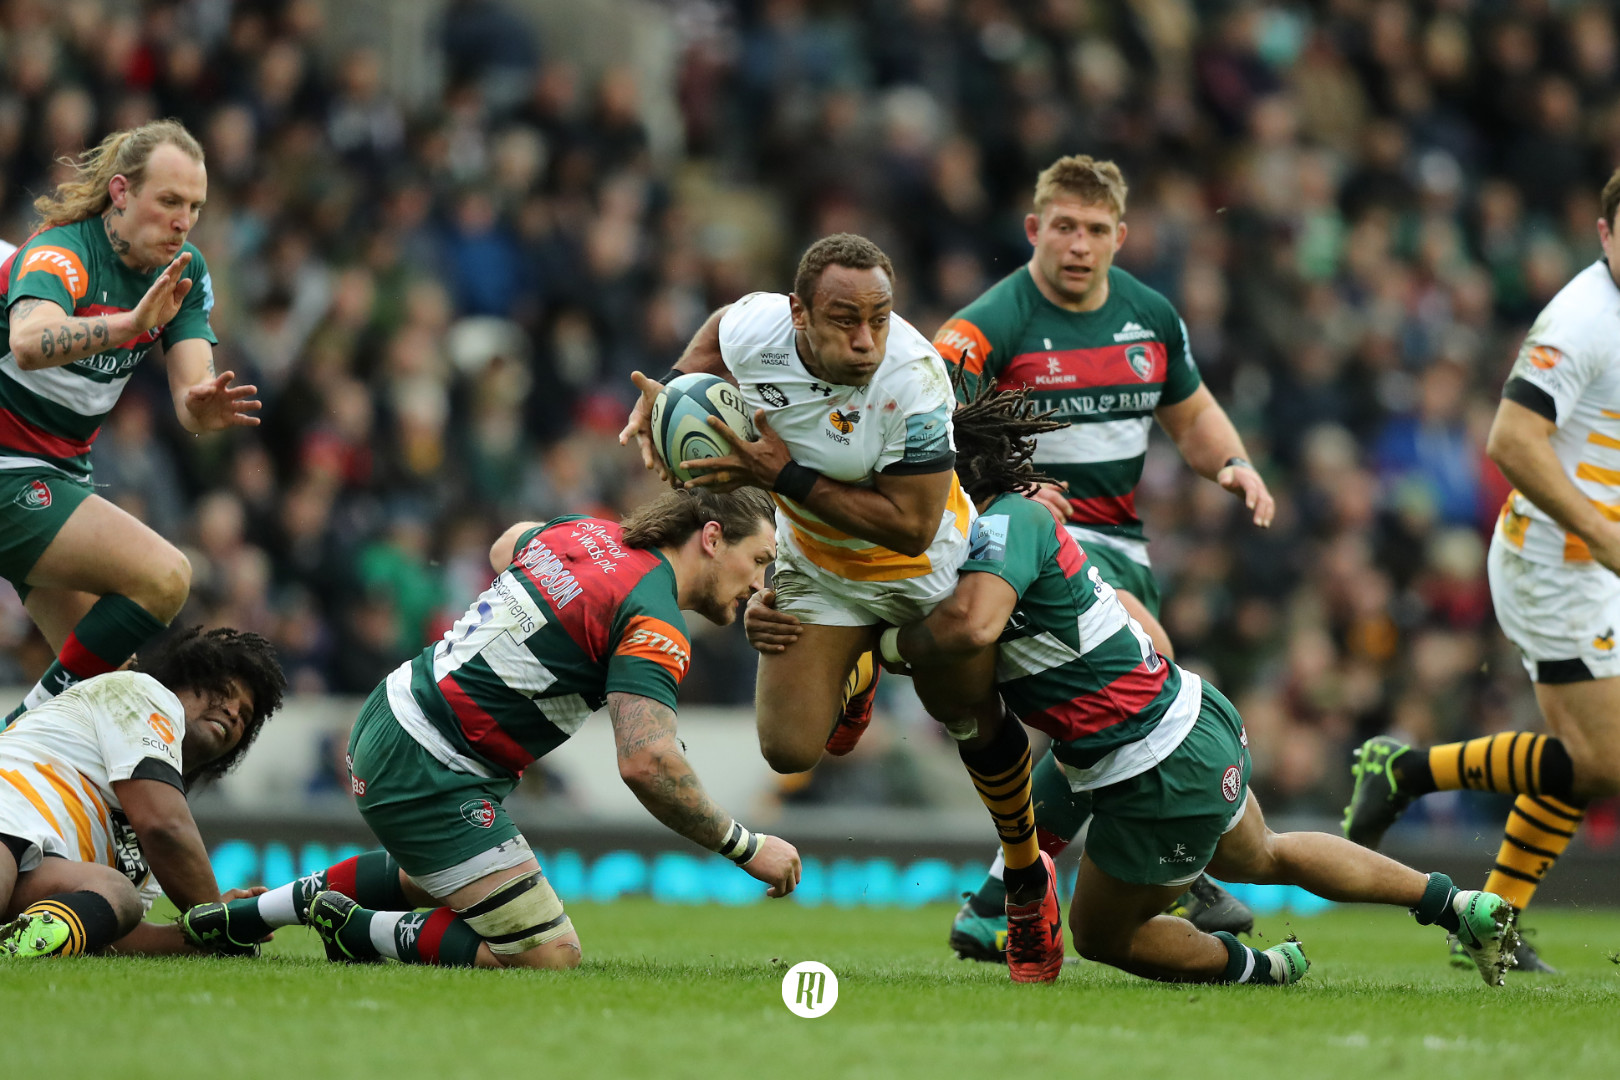 Match Analysis: Leicester Tigers vs Wasps